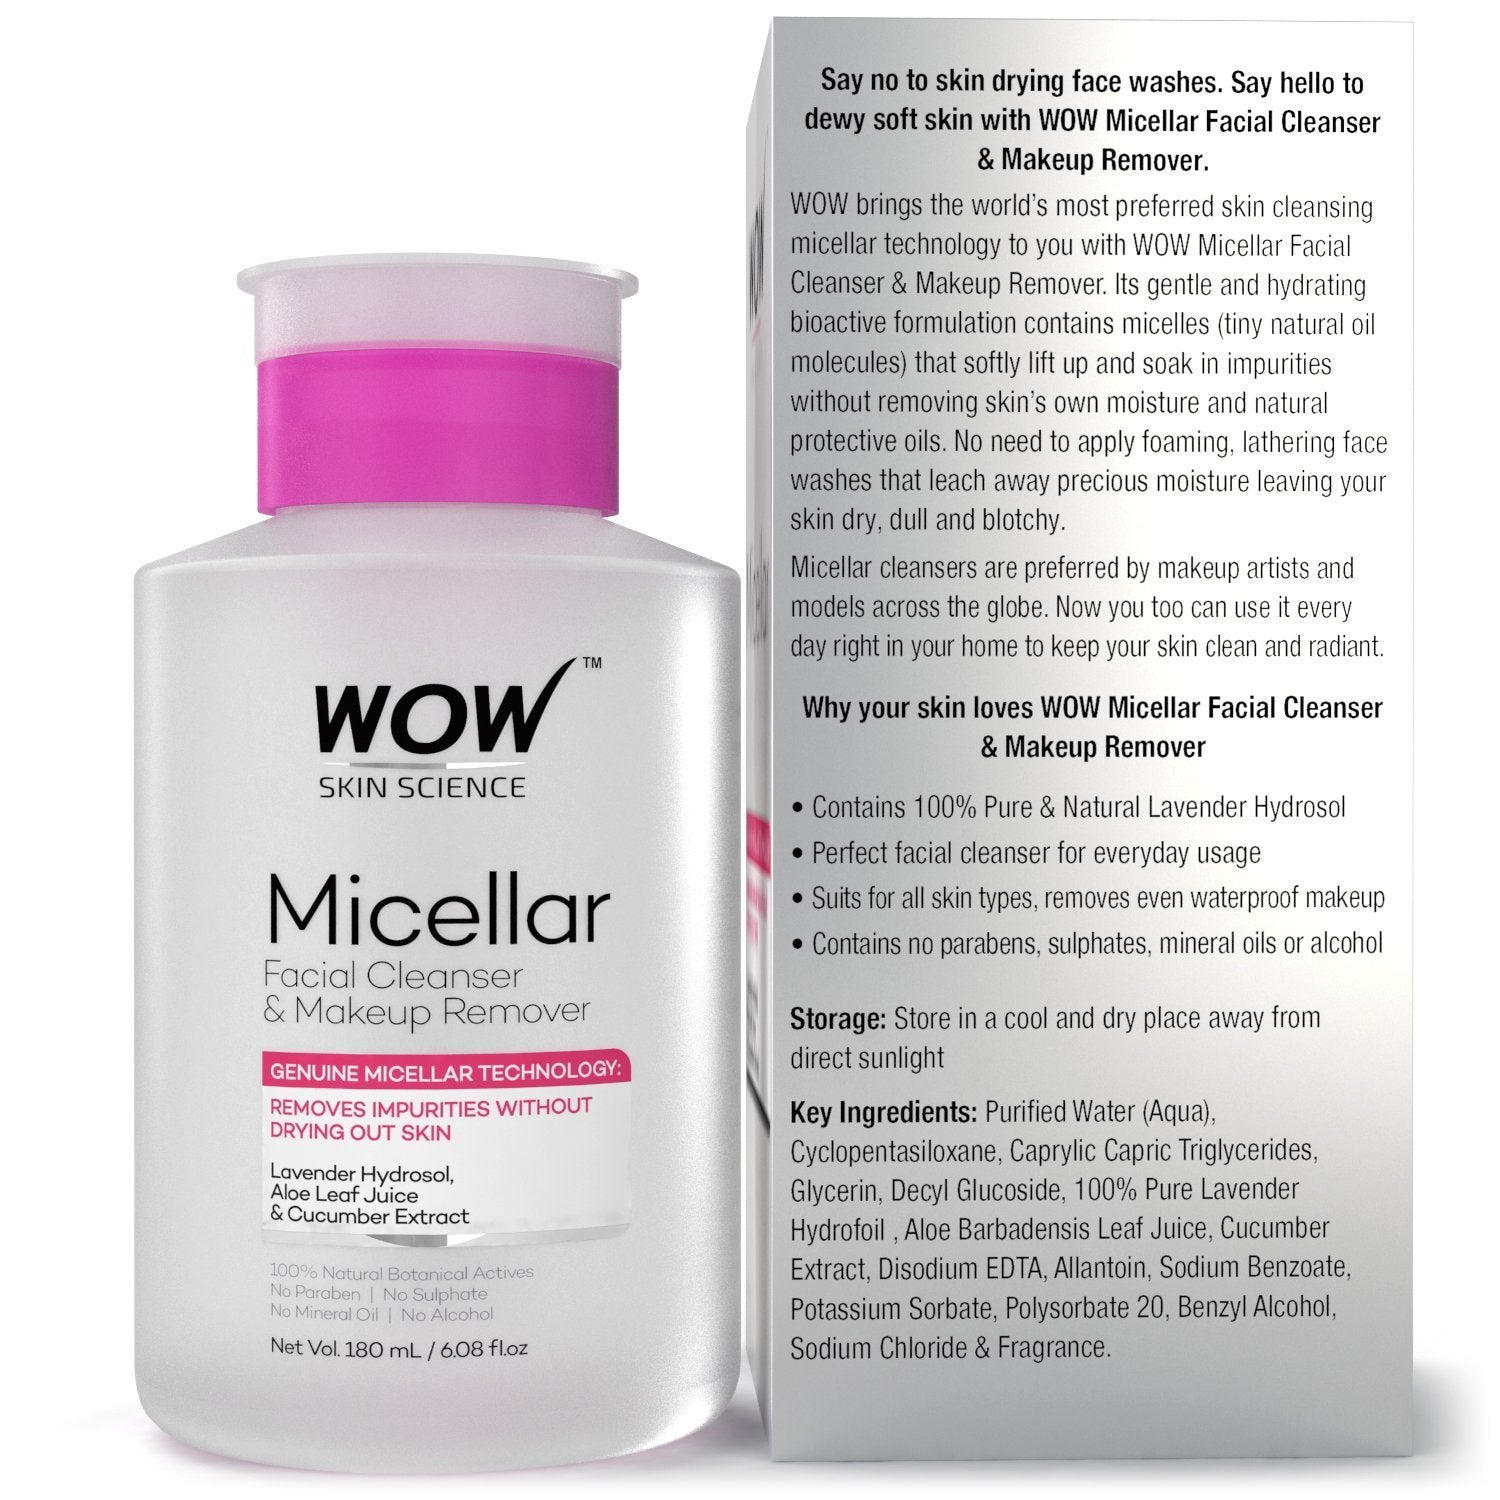 WOW Skin Science Micellar Water Facial Cleanser & Makeup Remover